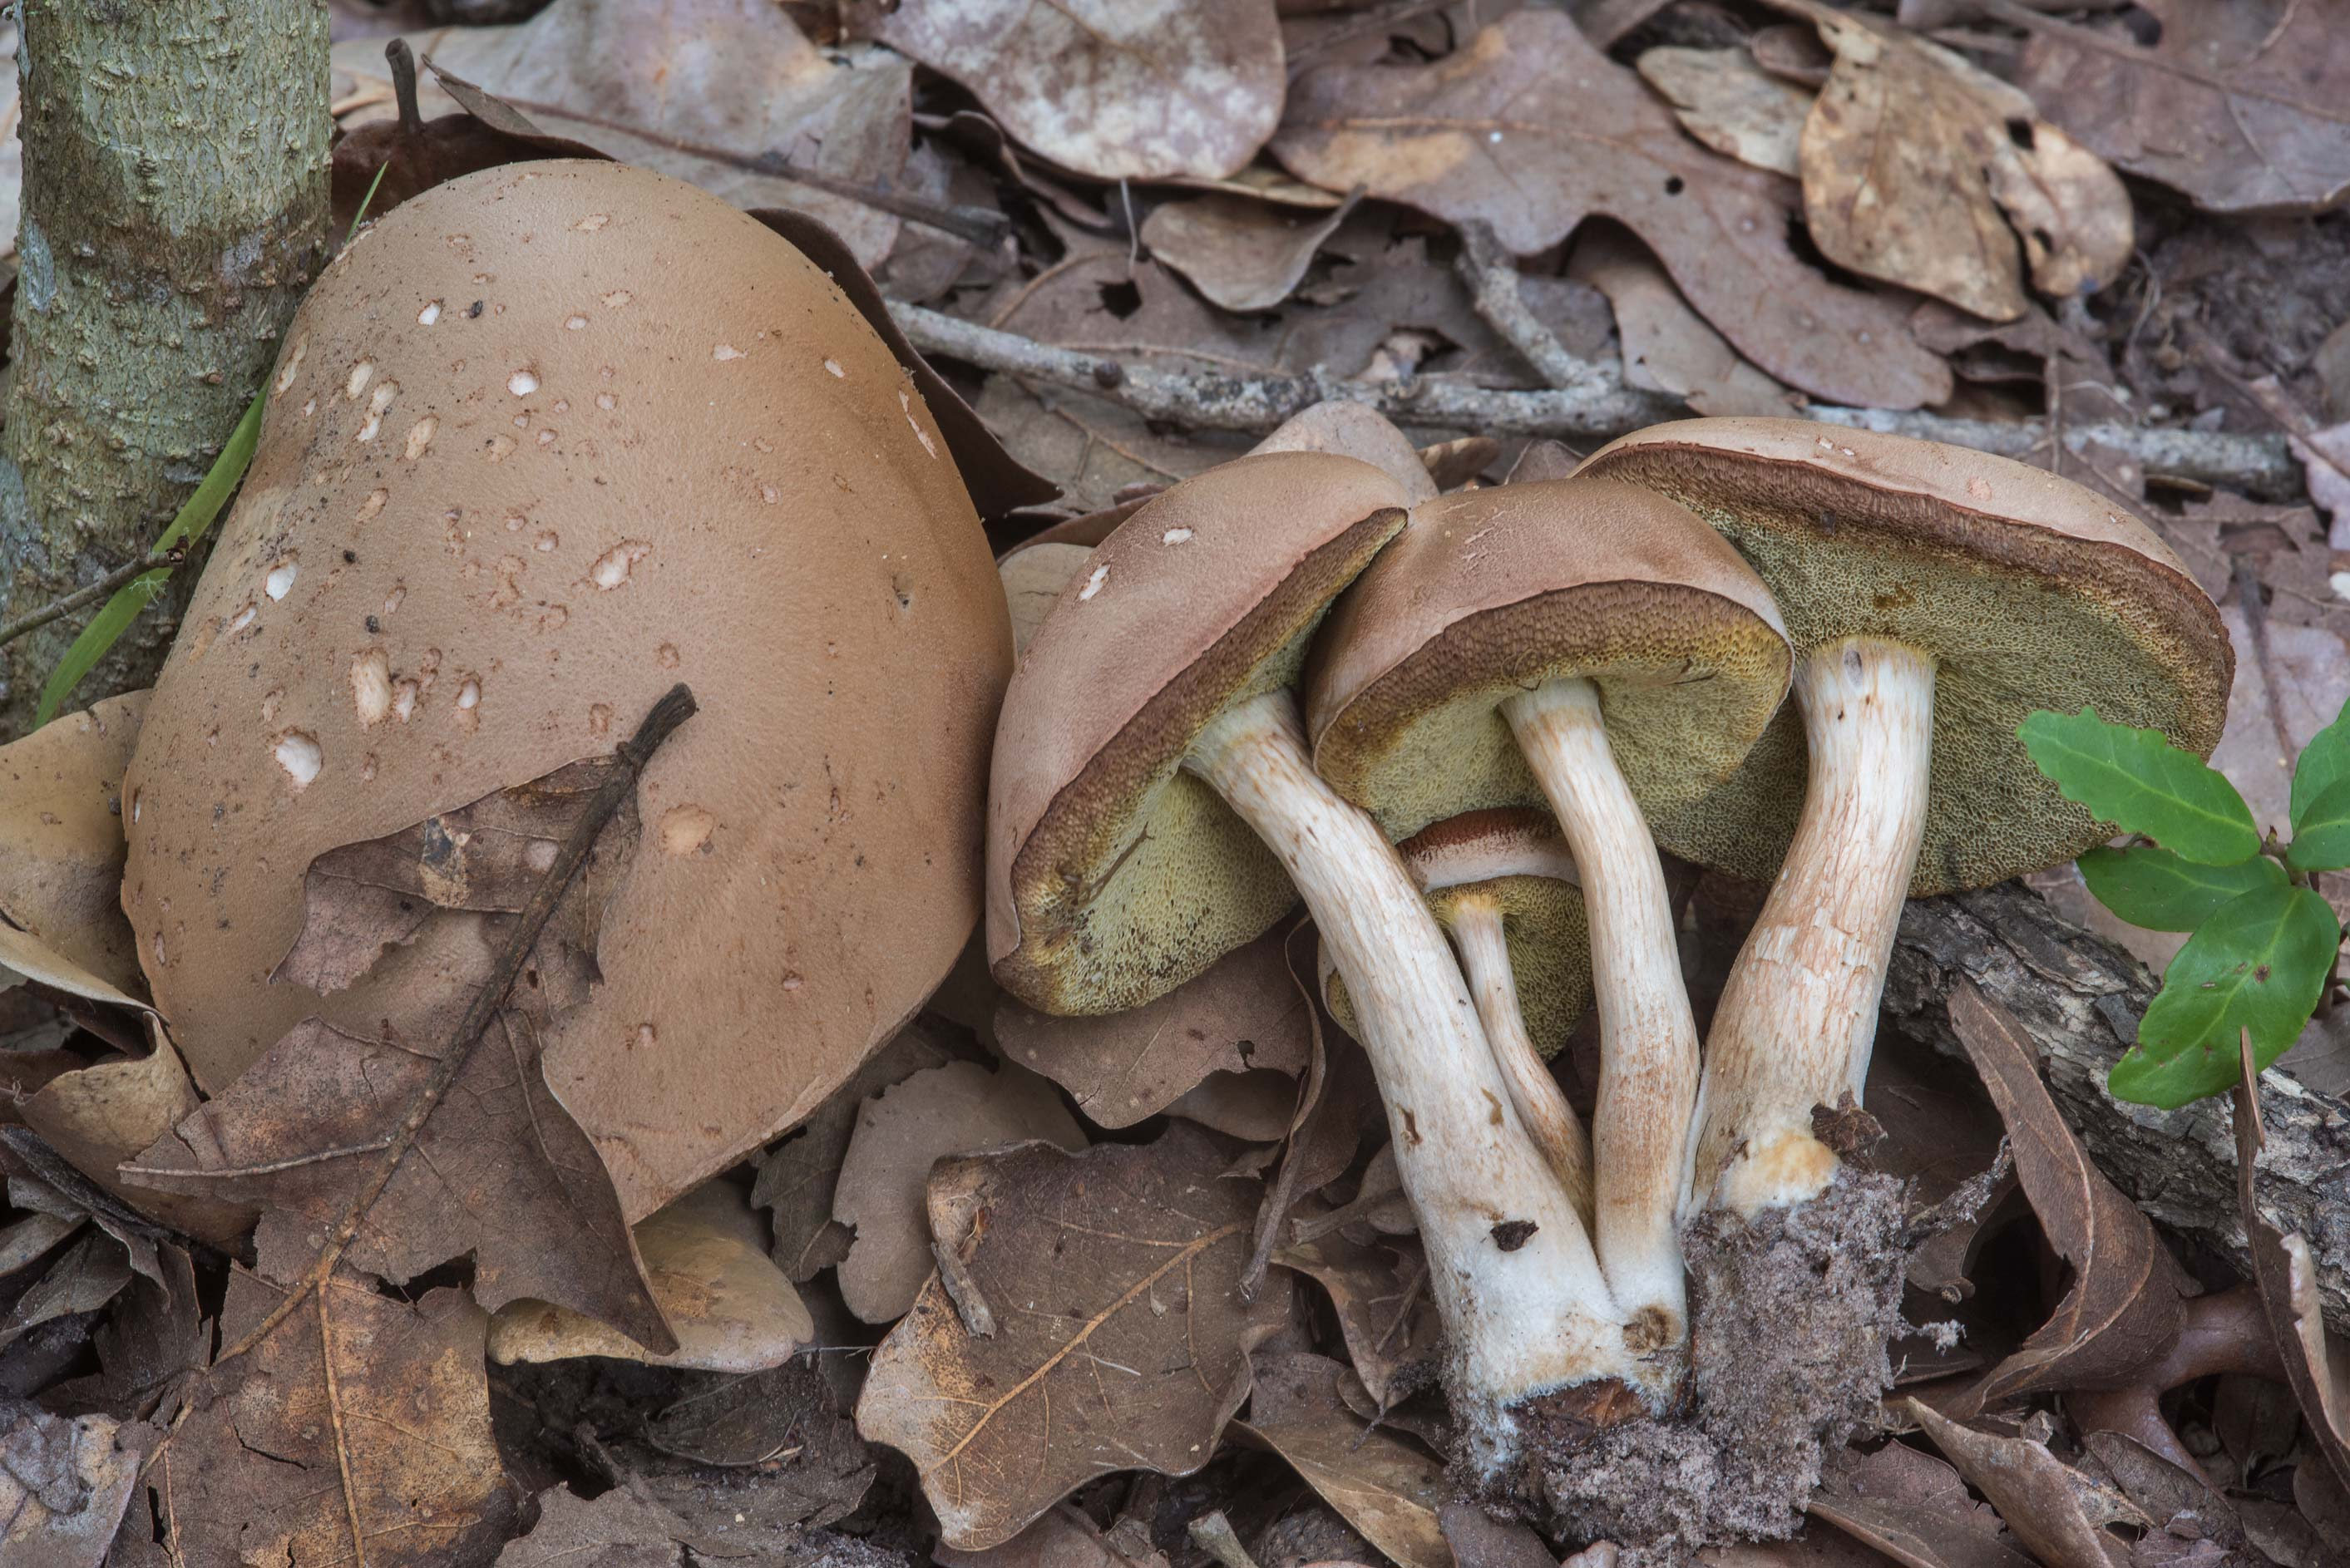 Group of some brown bolete mushrooms under oaks in Lick Creek Park. College Station, Texas